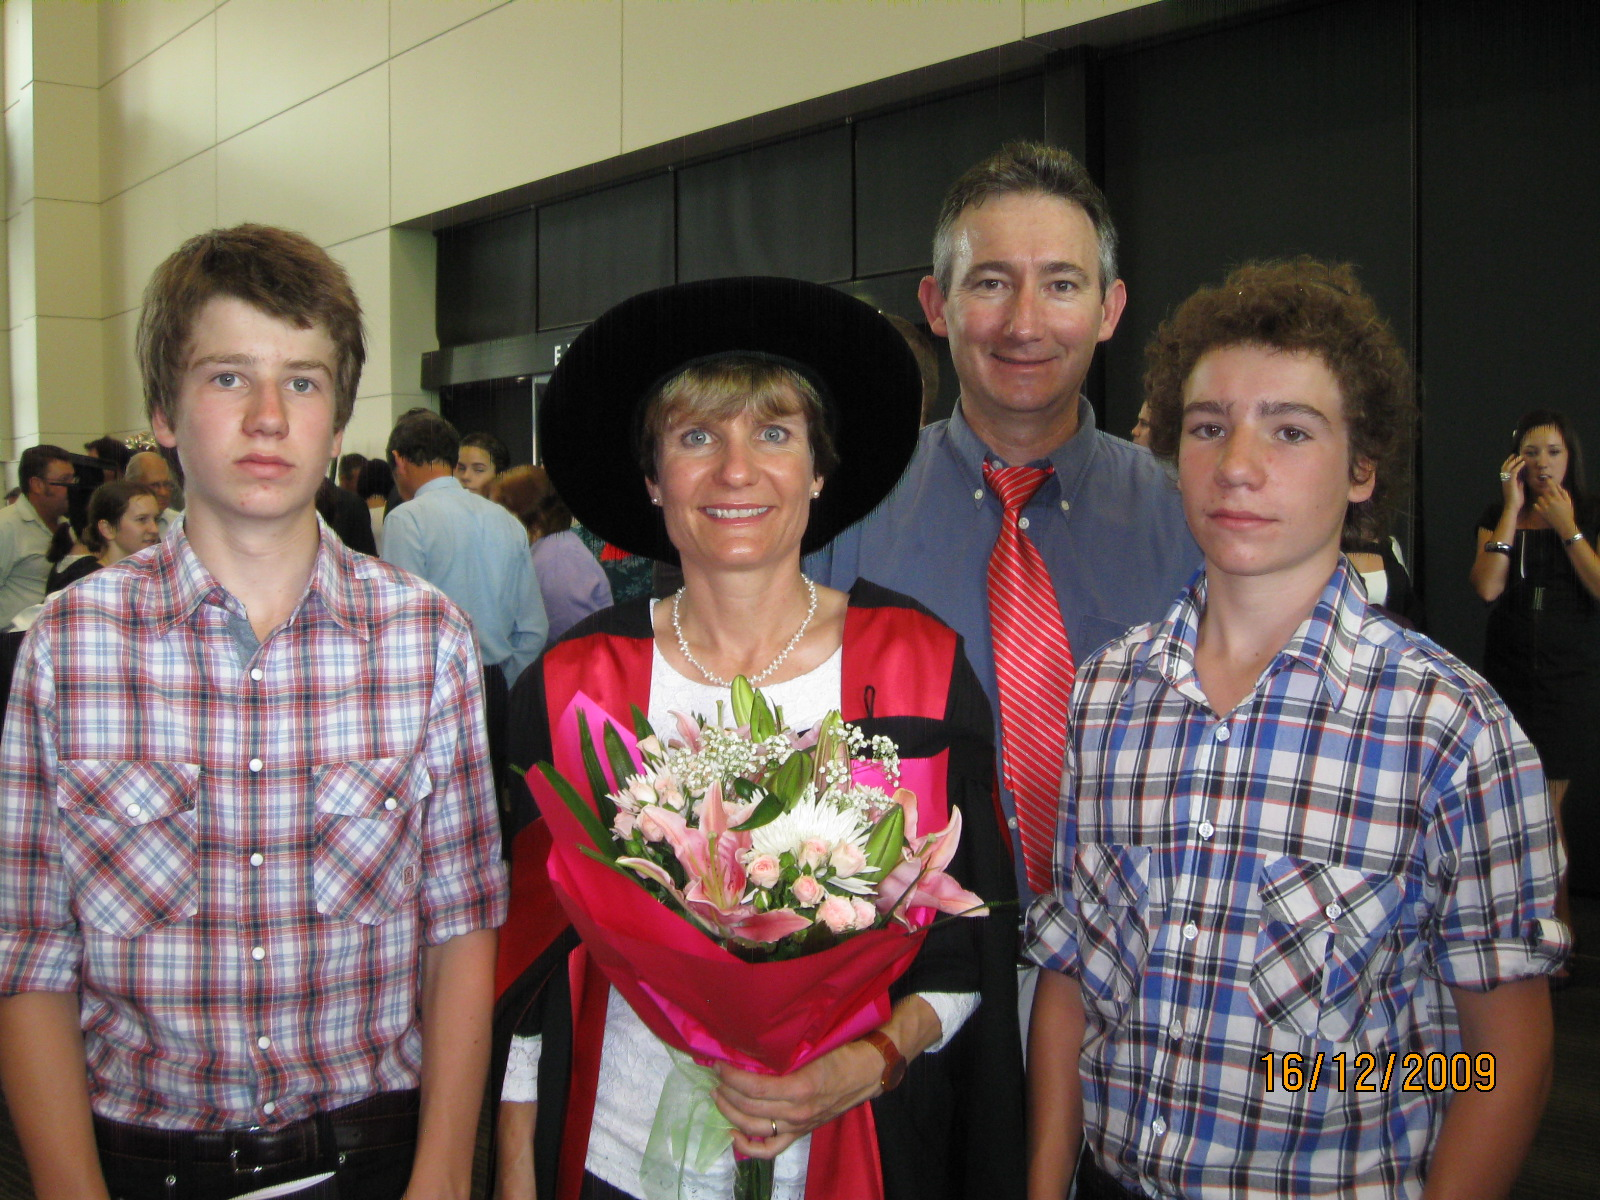 Barbara George-Jaeggli at her PhD graduation with her family